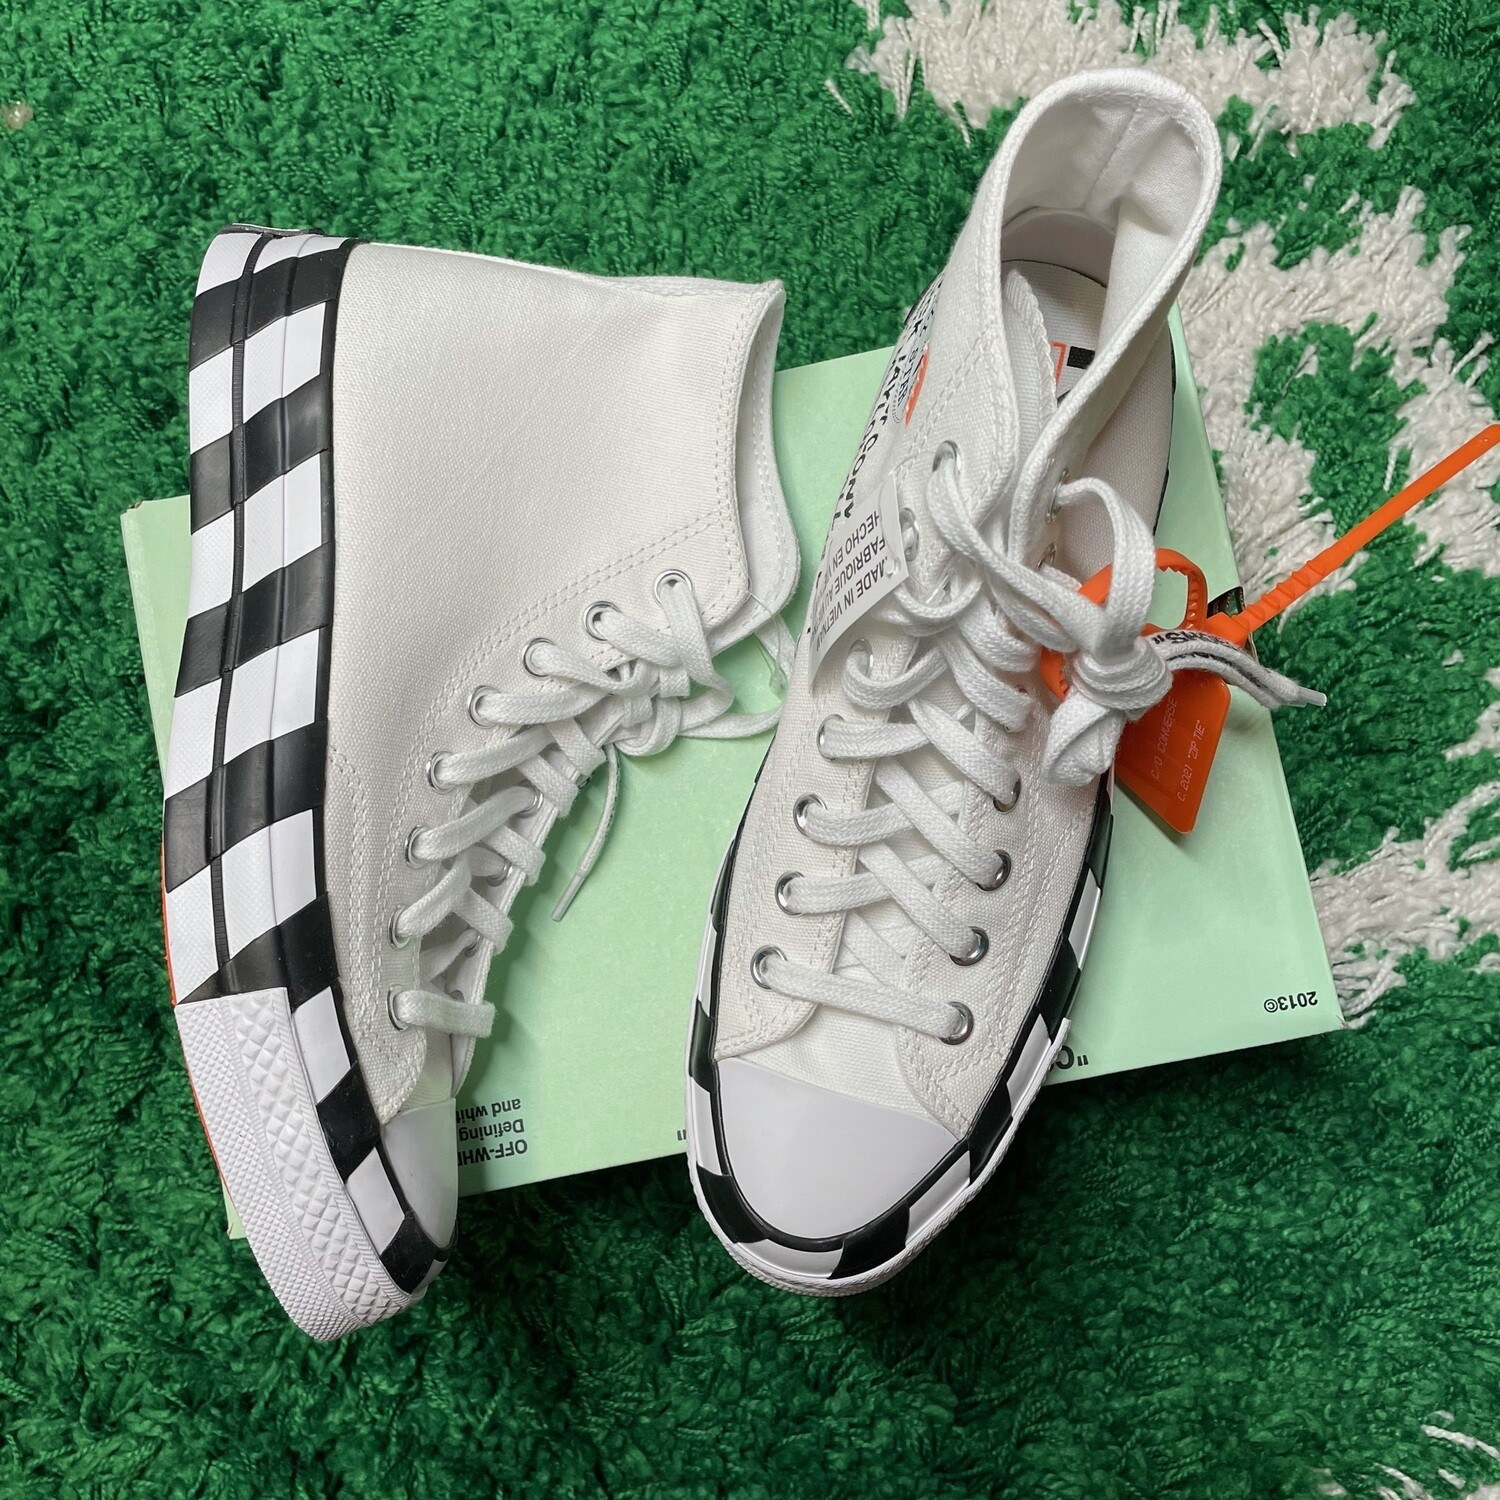 Converse Chuck Taylor All-Star 70s Hi Off-White Size 7